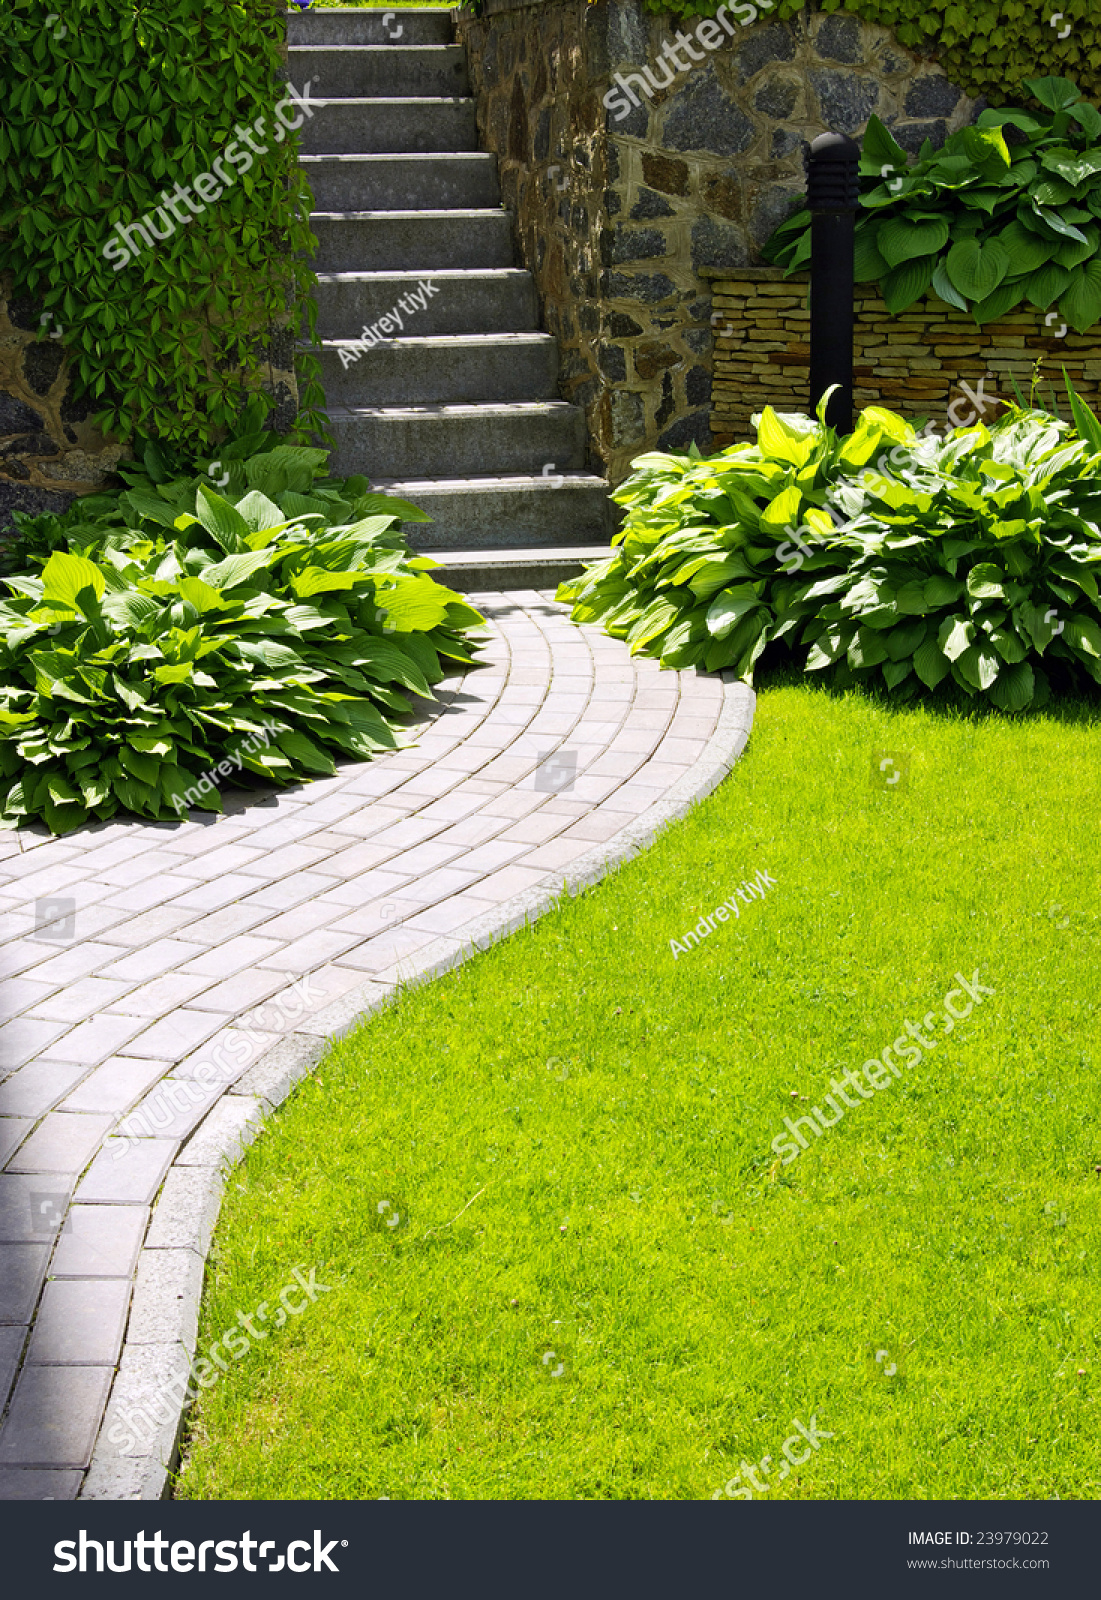 Garden Stone Path With Grass Growing Up Between The Stones ...